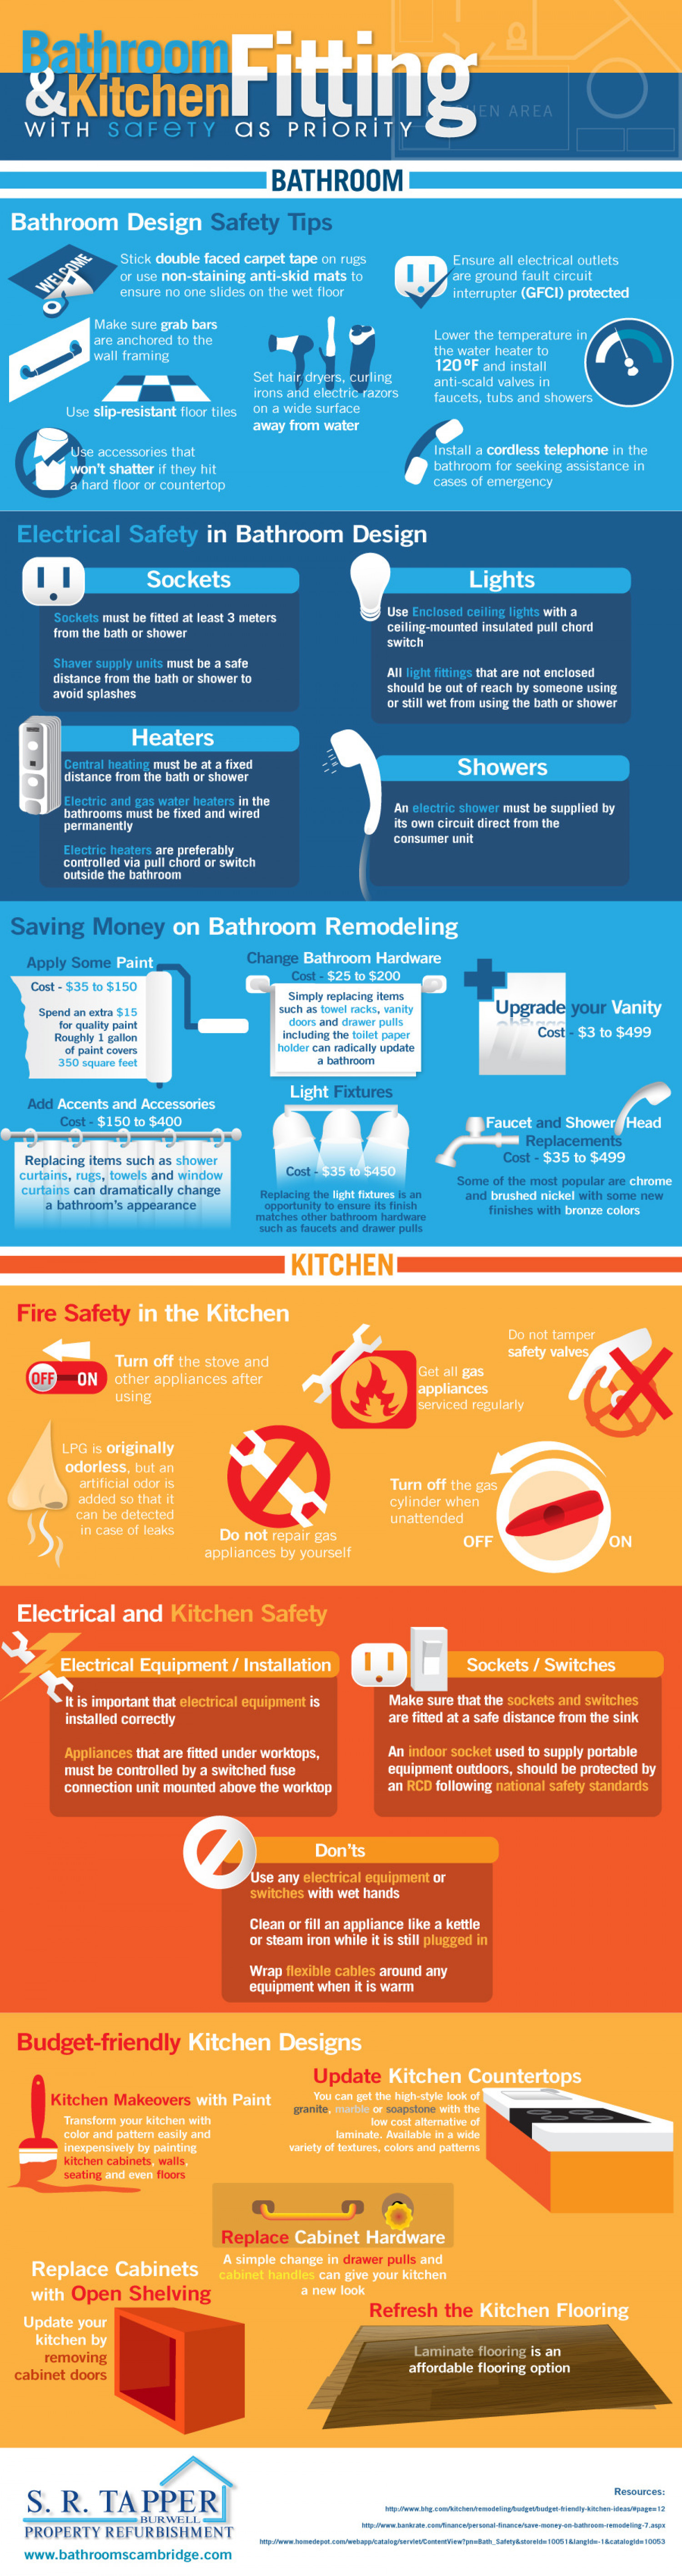 Bathroom and Kitchen Fitting with Safety as Priority Infographic